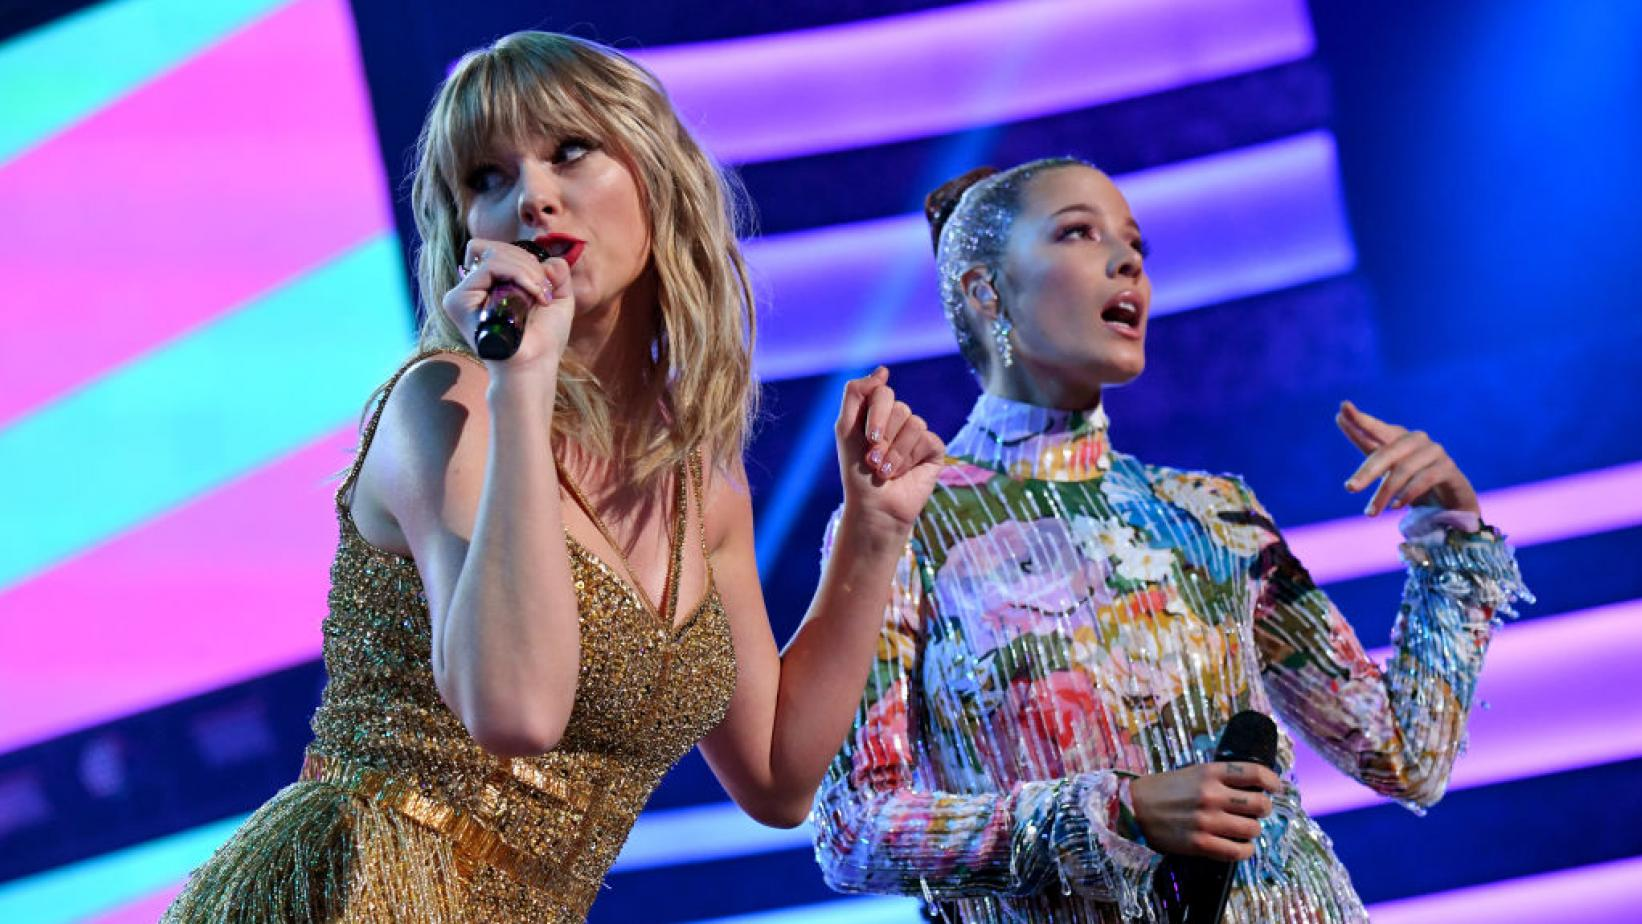 Taylor Swift and Halsey perform at the 2019 American Music Awards